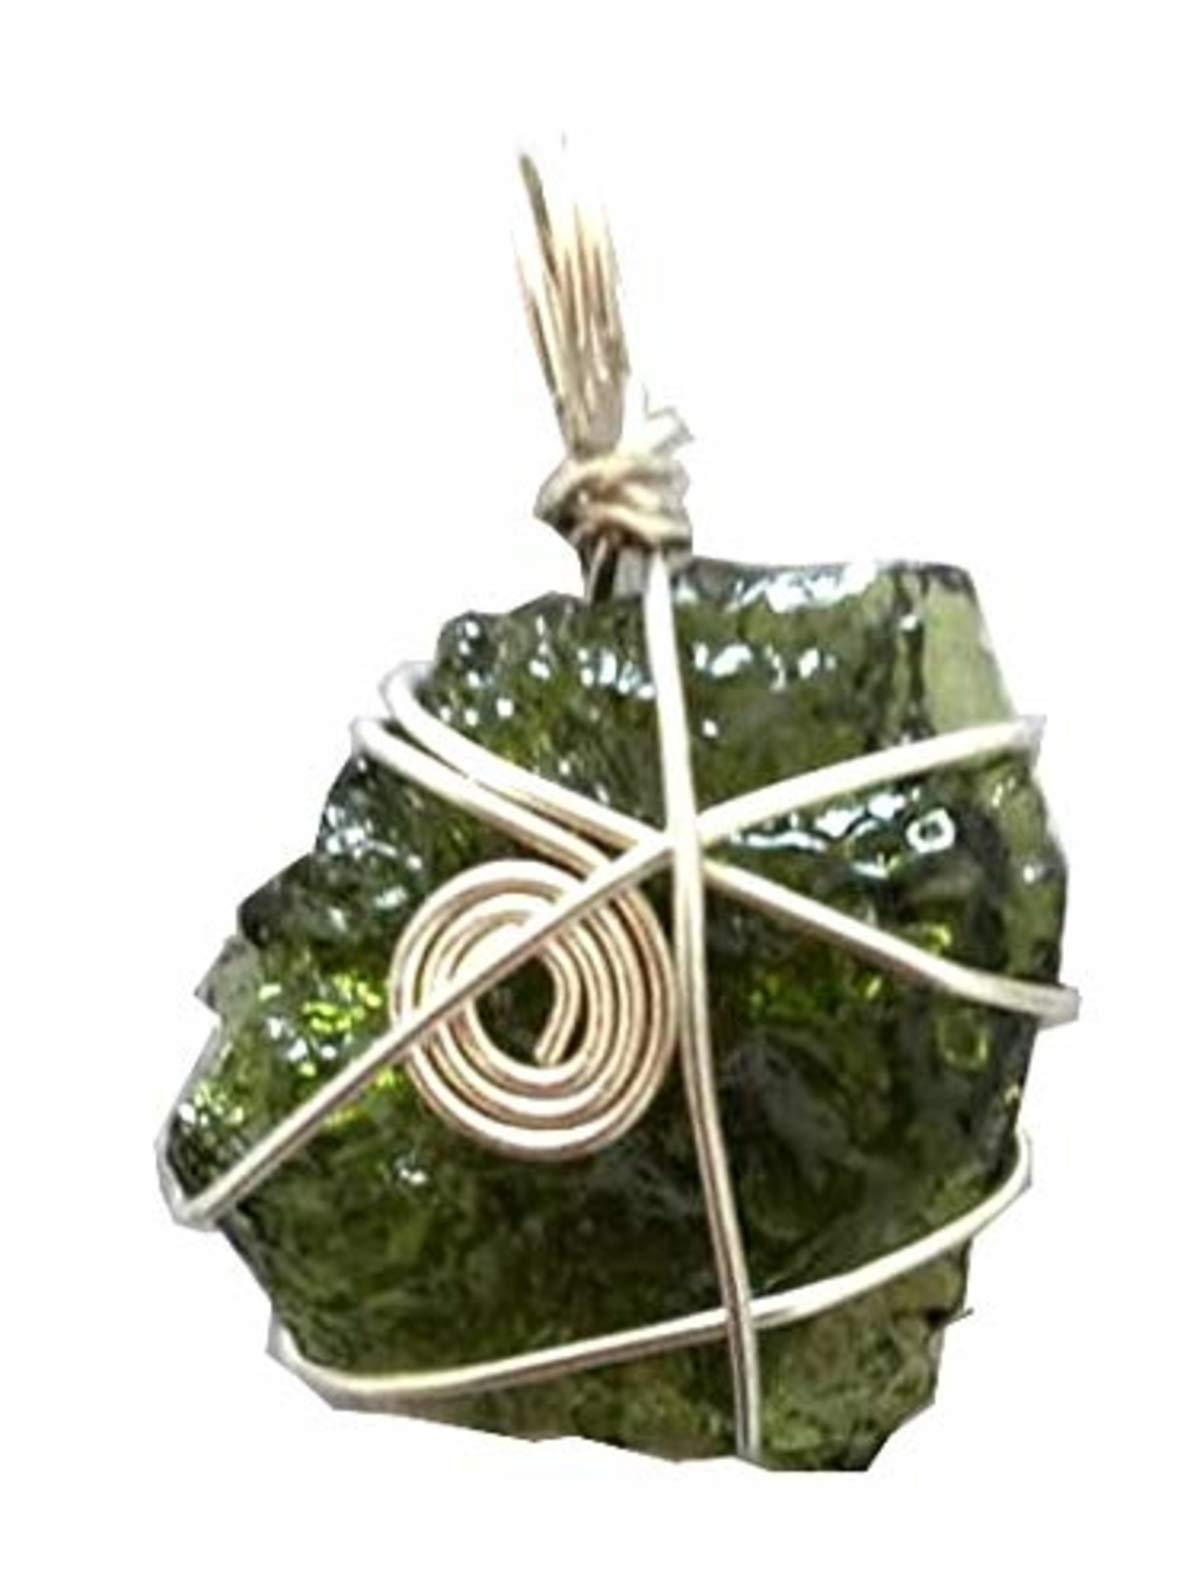 Pooja Gems Moldavite Pendant by The Gram - Natural raw Rough- Tektite Pieces Natural Unheated Healing Gemstone from Czech Republic (30 Carats)